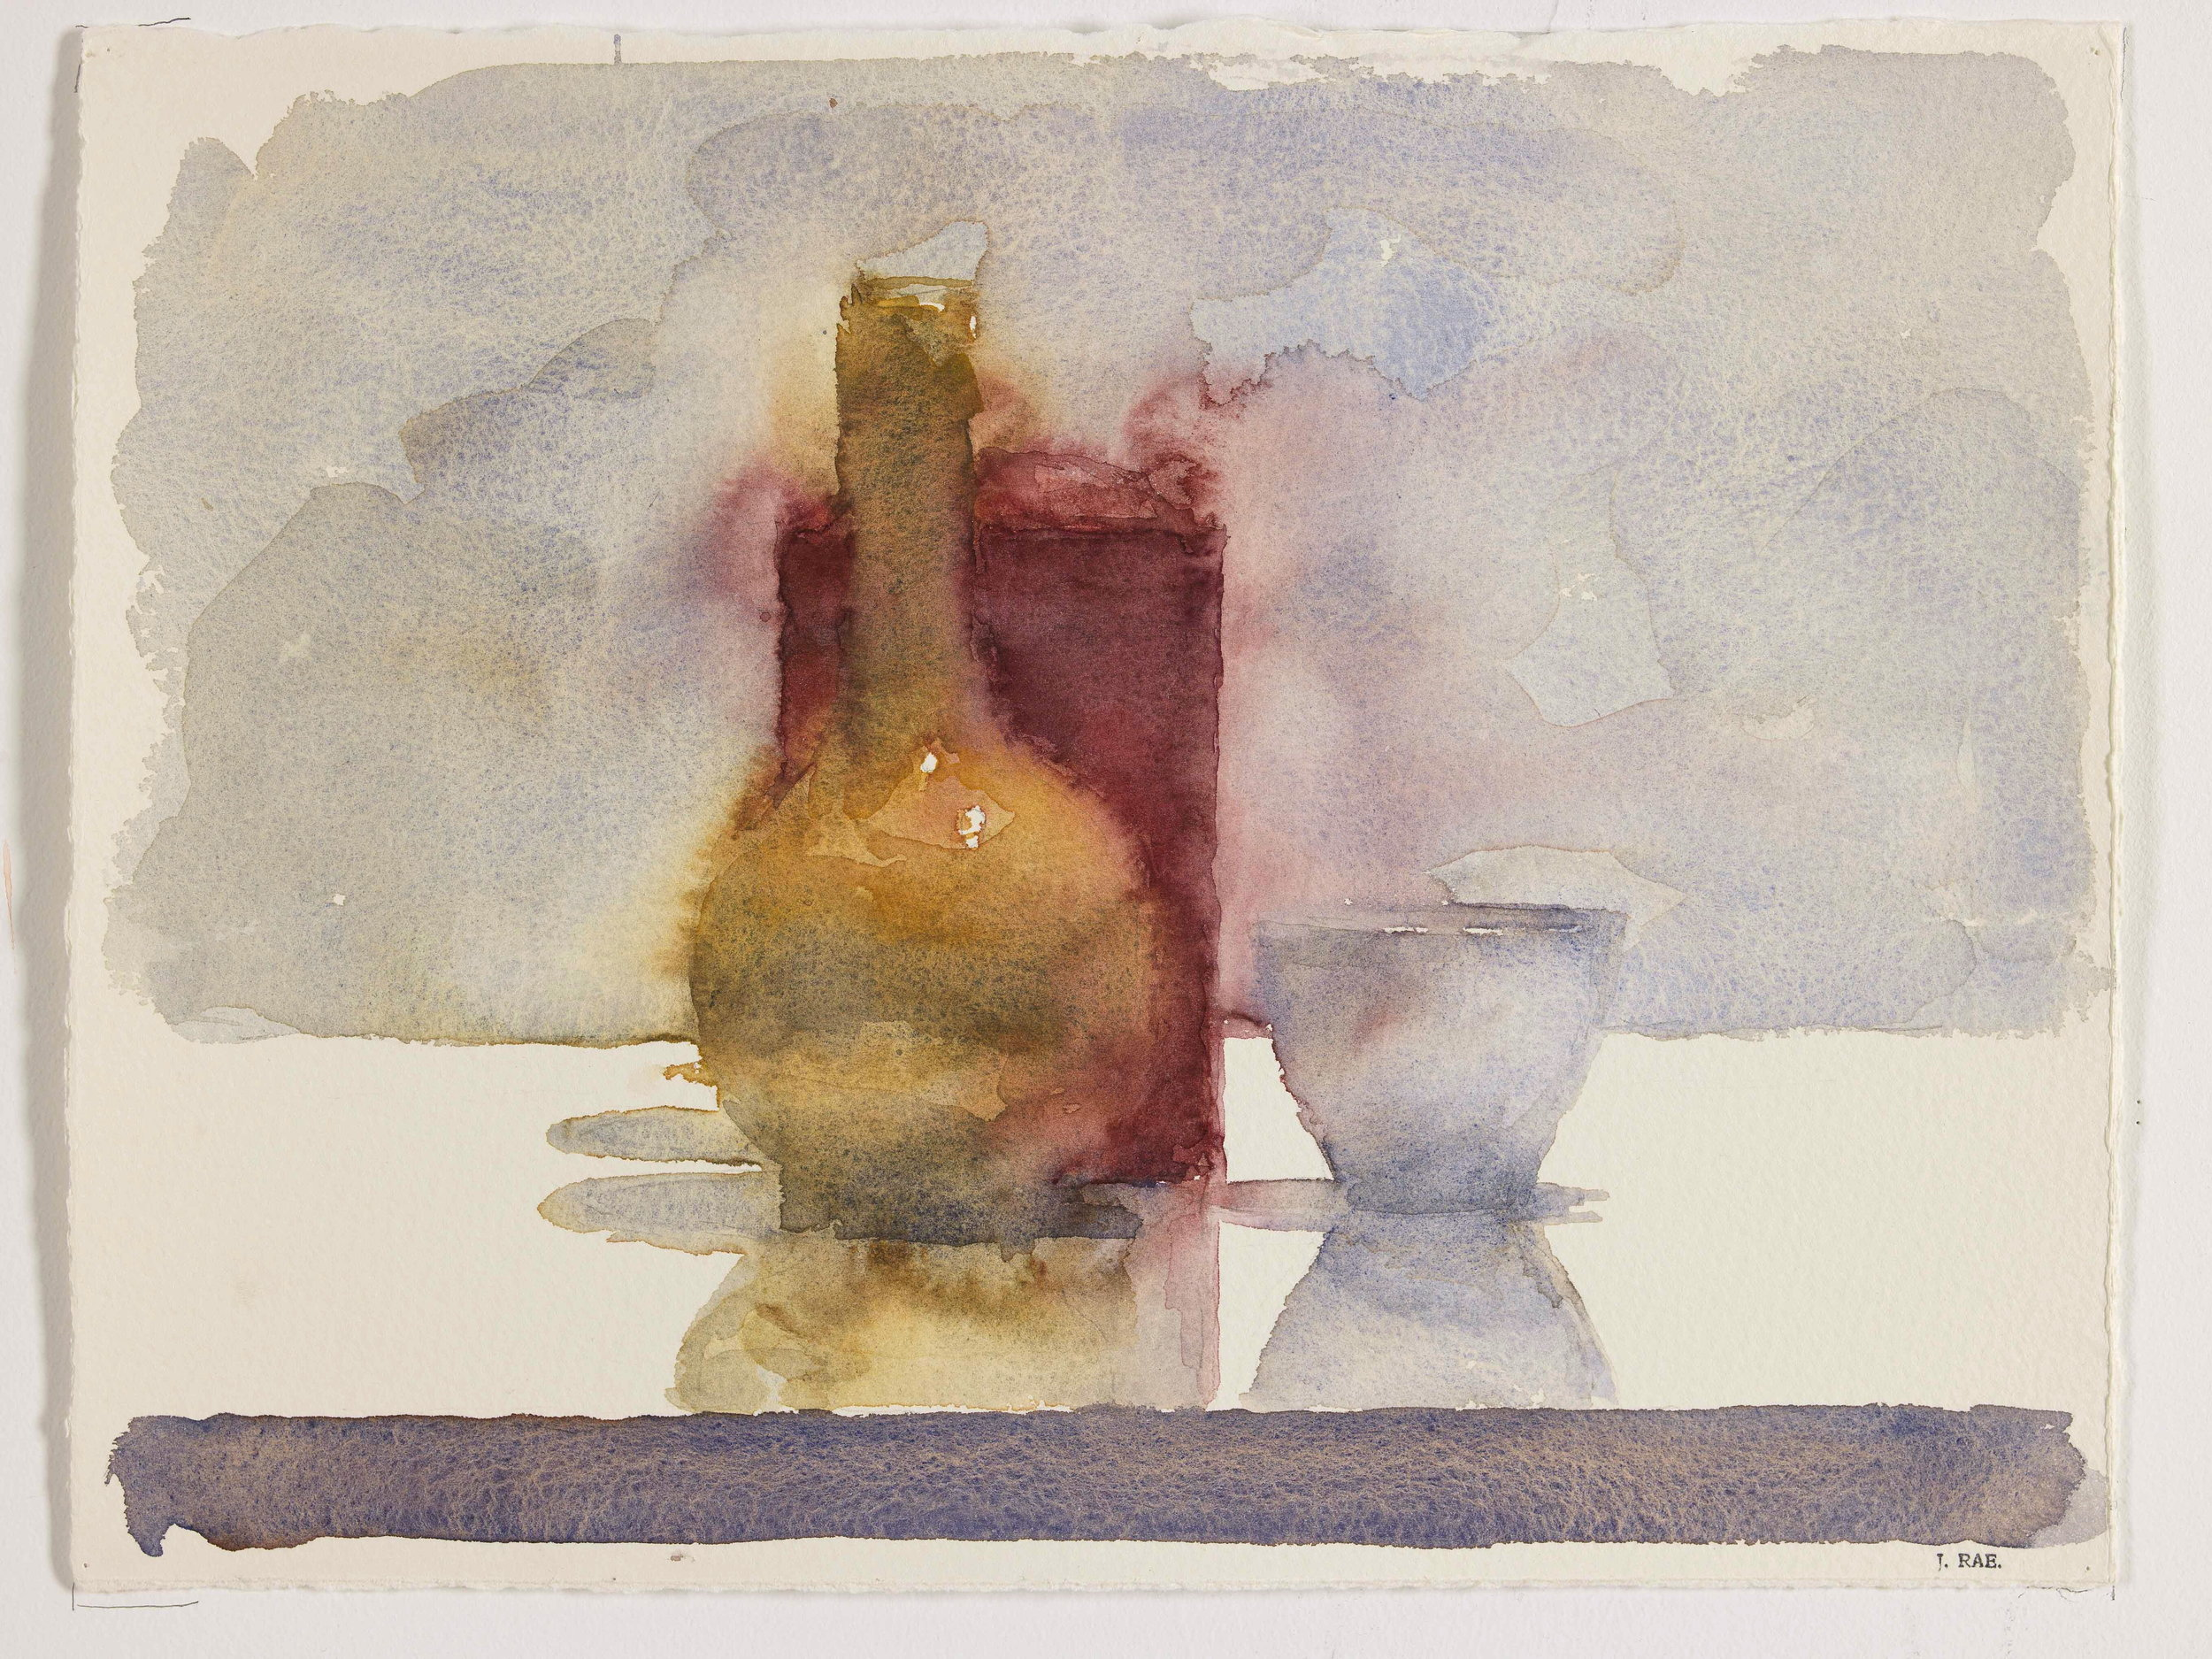 WCSL115, 2010, water colour on paper, 38 x 29cm.